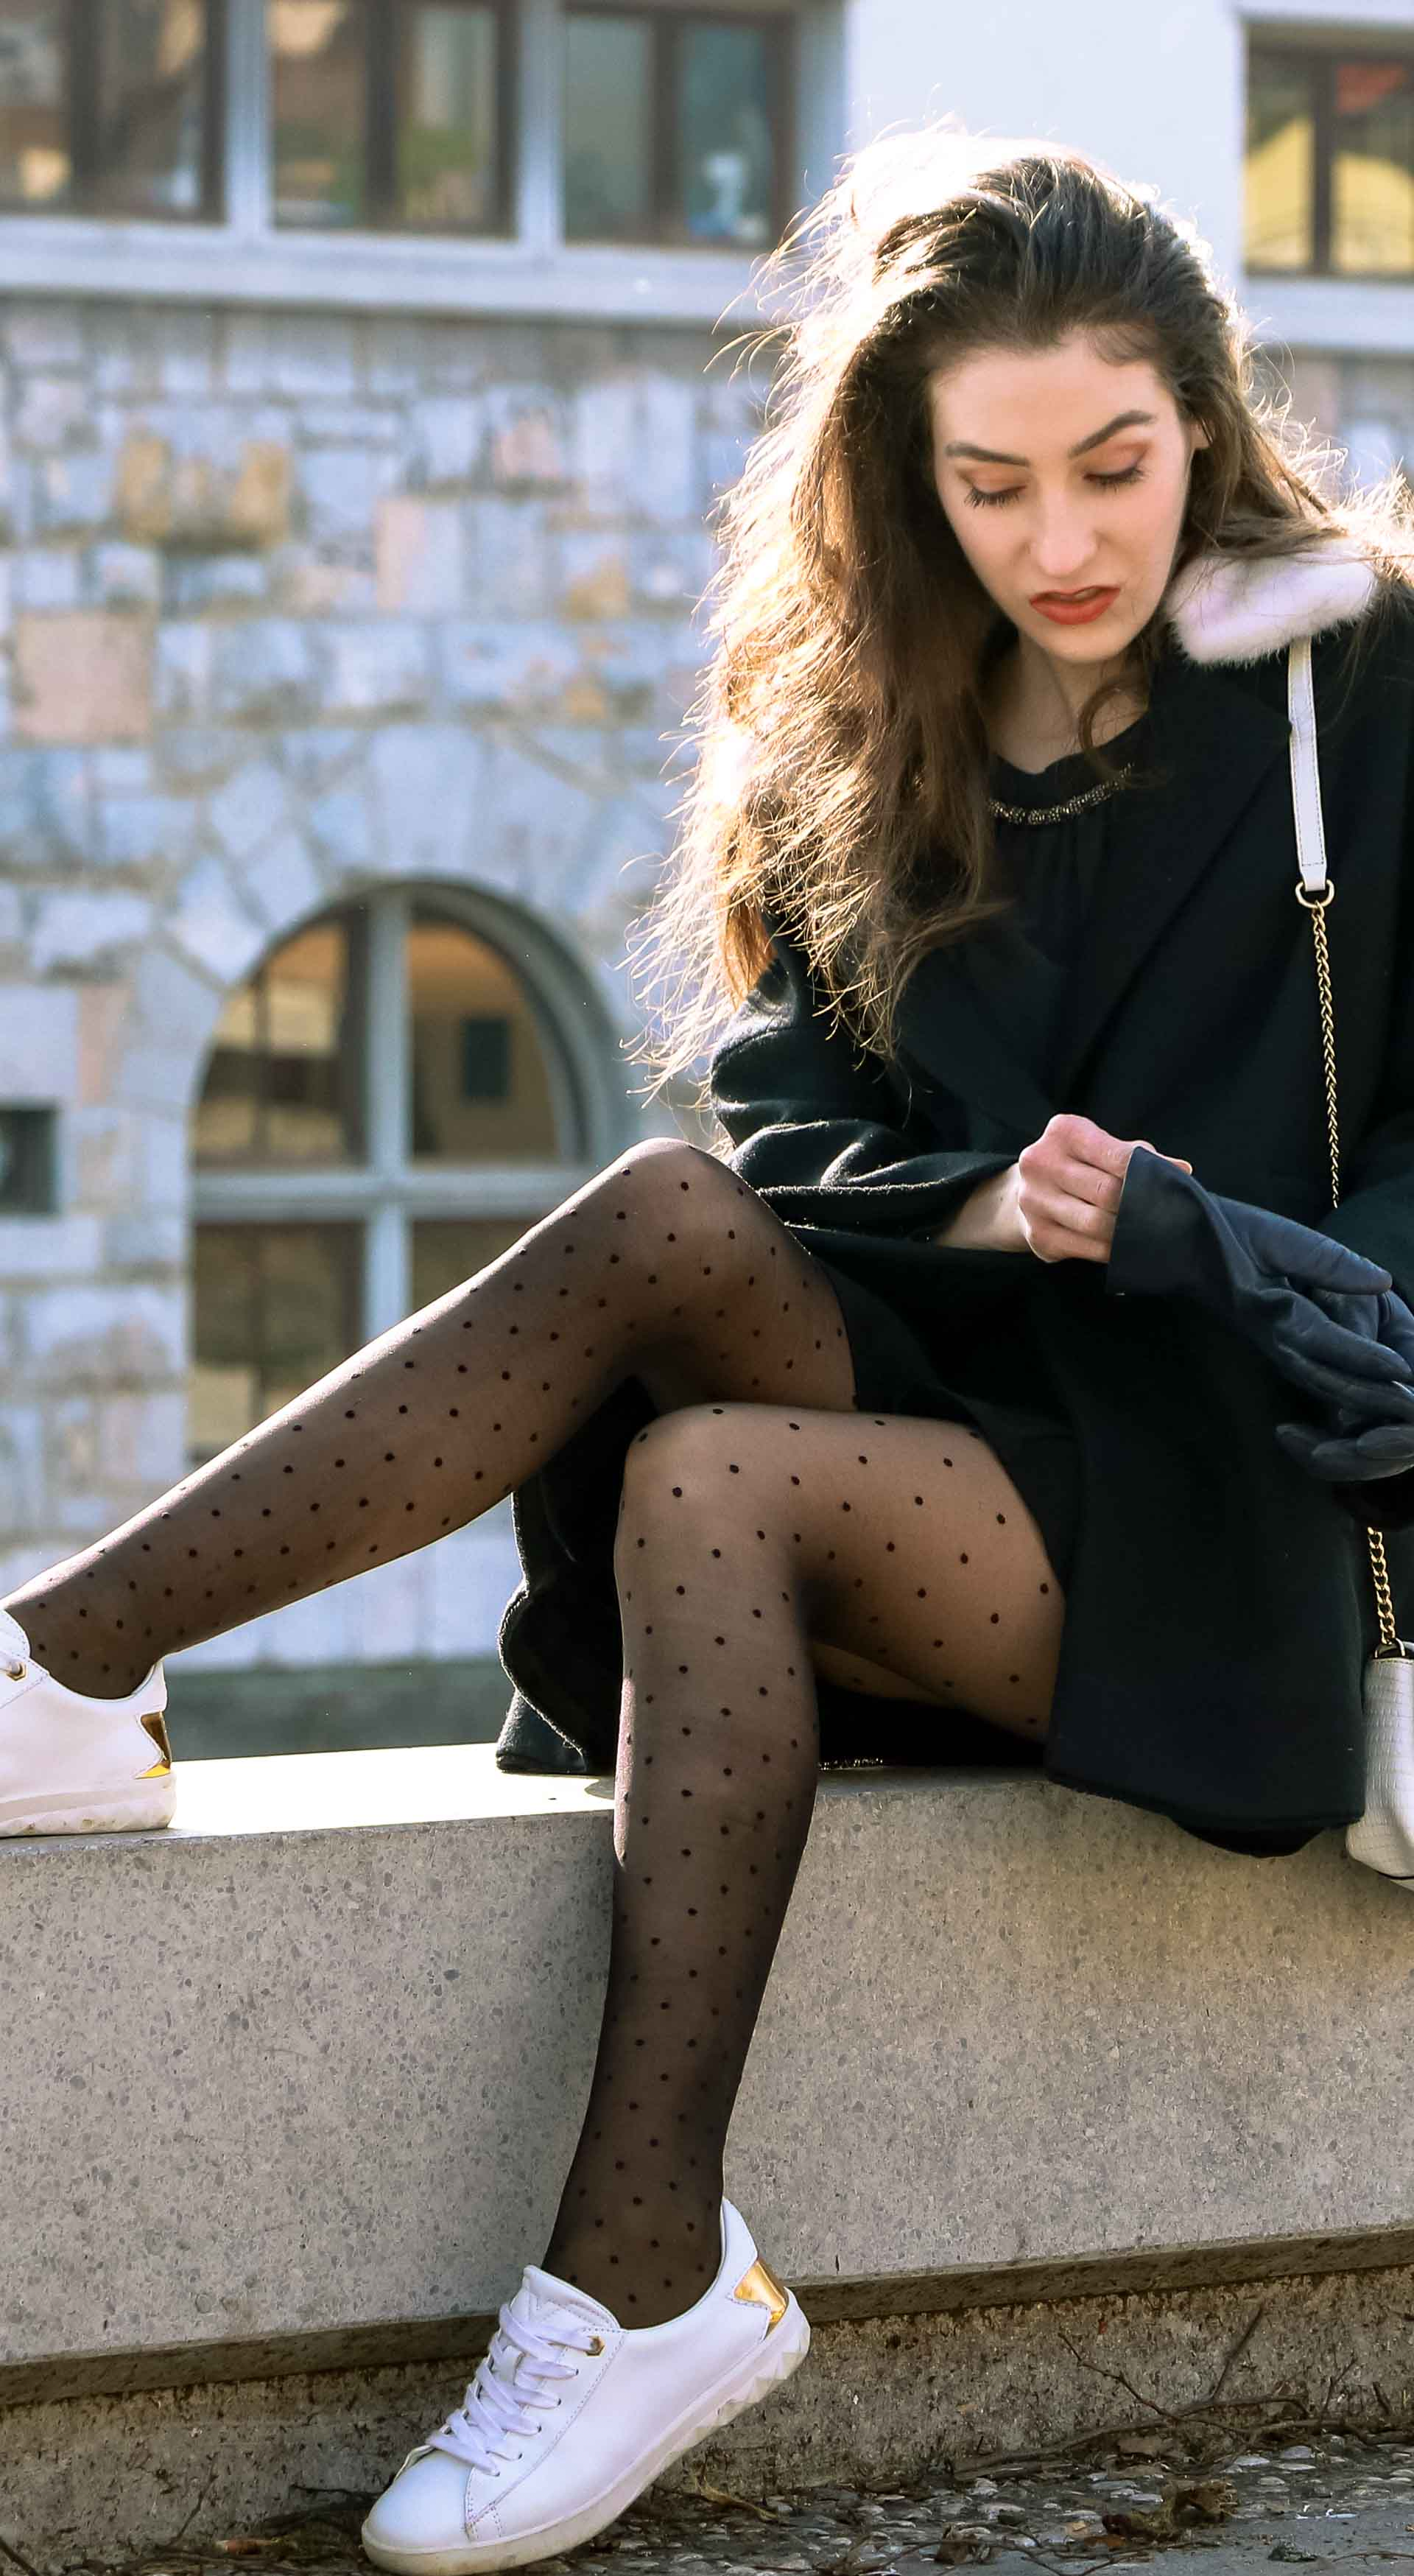 Fashion Blogger Veronika Lipar of Brunette from Wall Street dressed in a black Escada cape, black mini skirt and white sneakers from Diesel with black polka dot tights and white shoulder chain bag and blue leather gloves while sitting on a wall